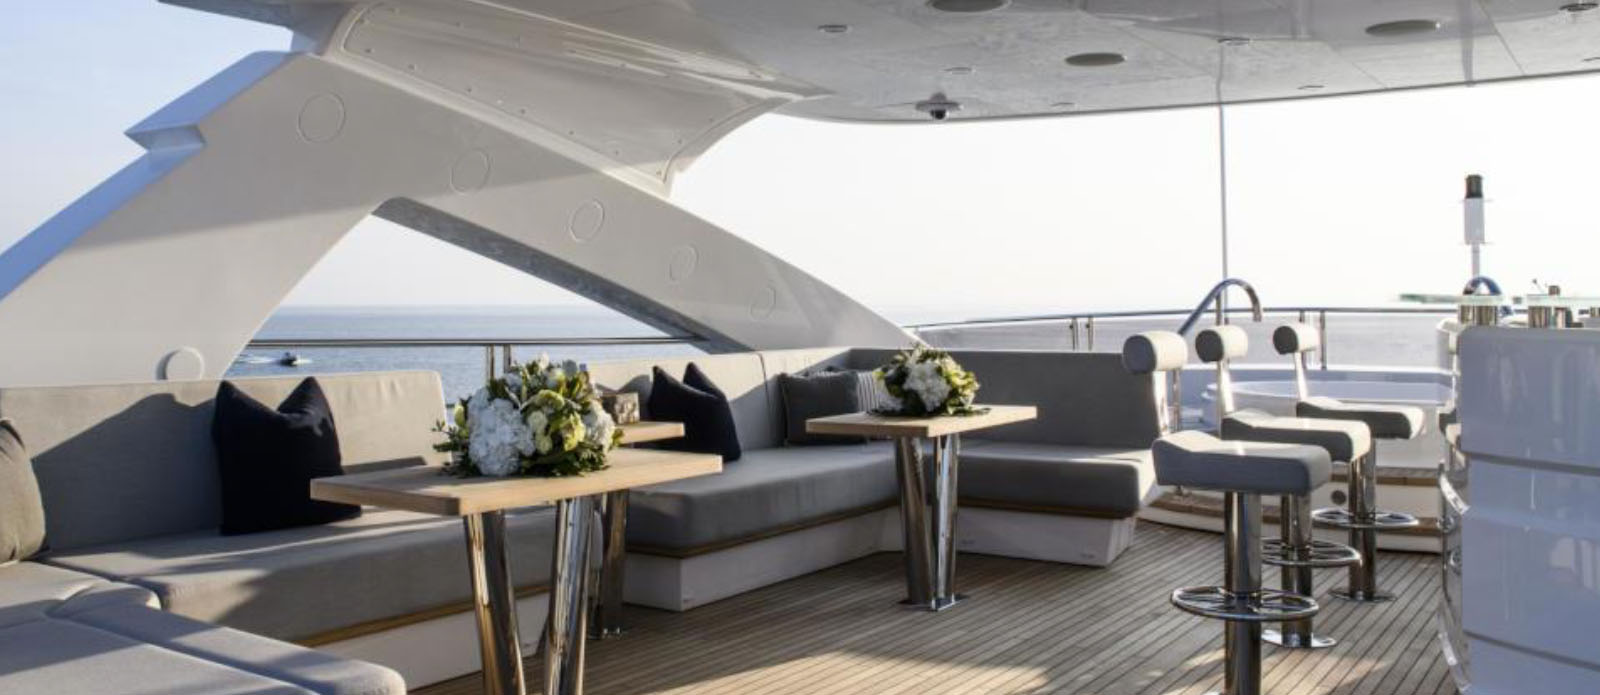 Berco-Voyager-Sunseeker-Bar